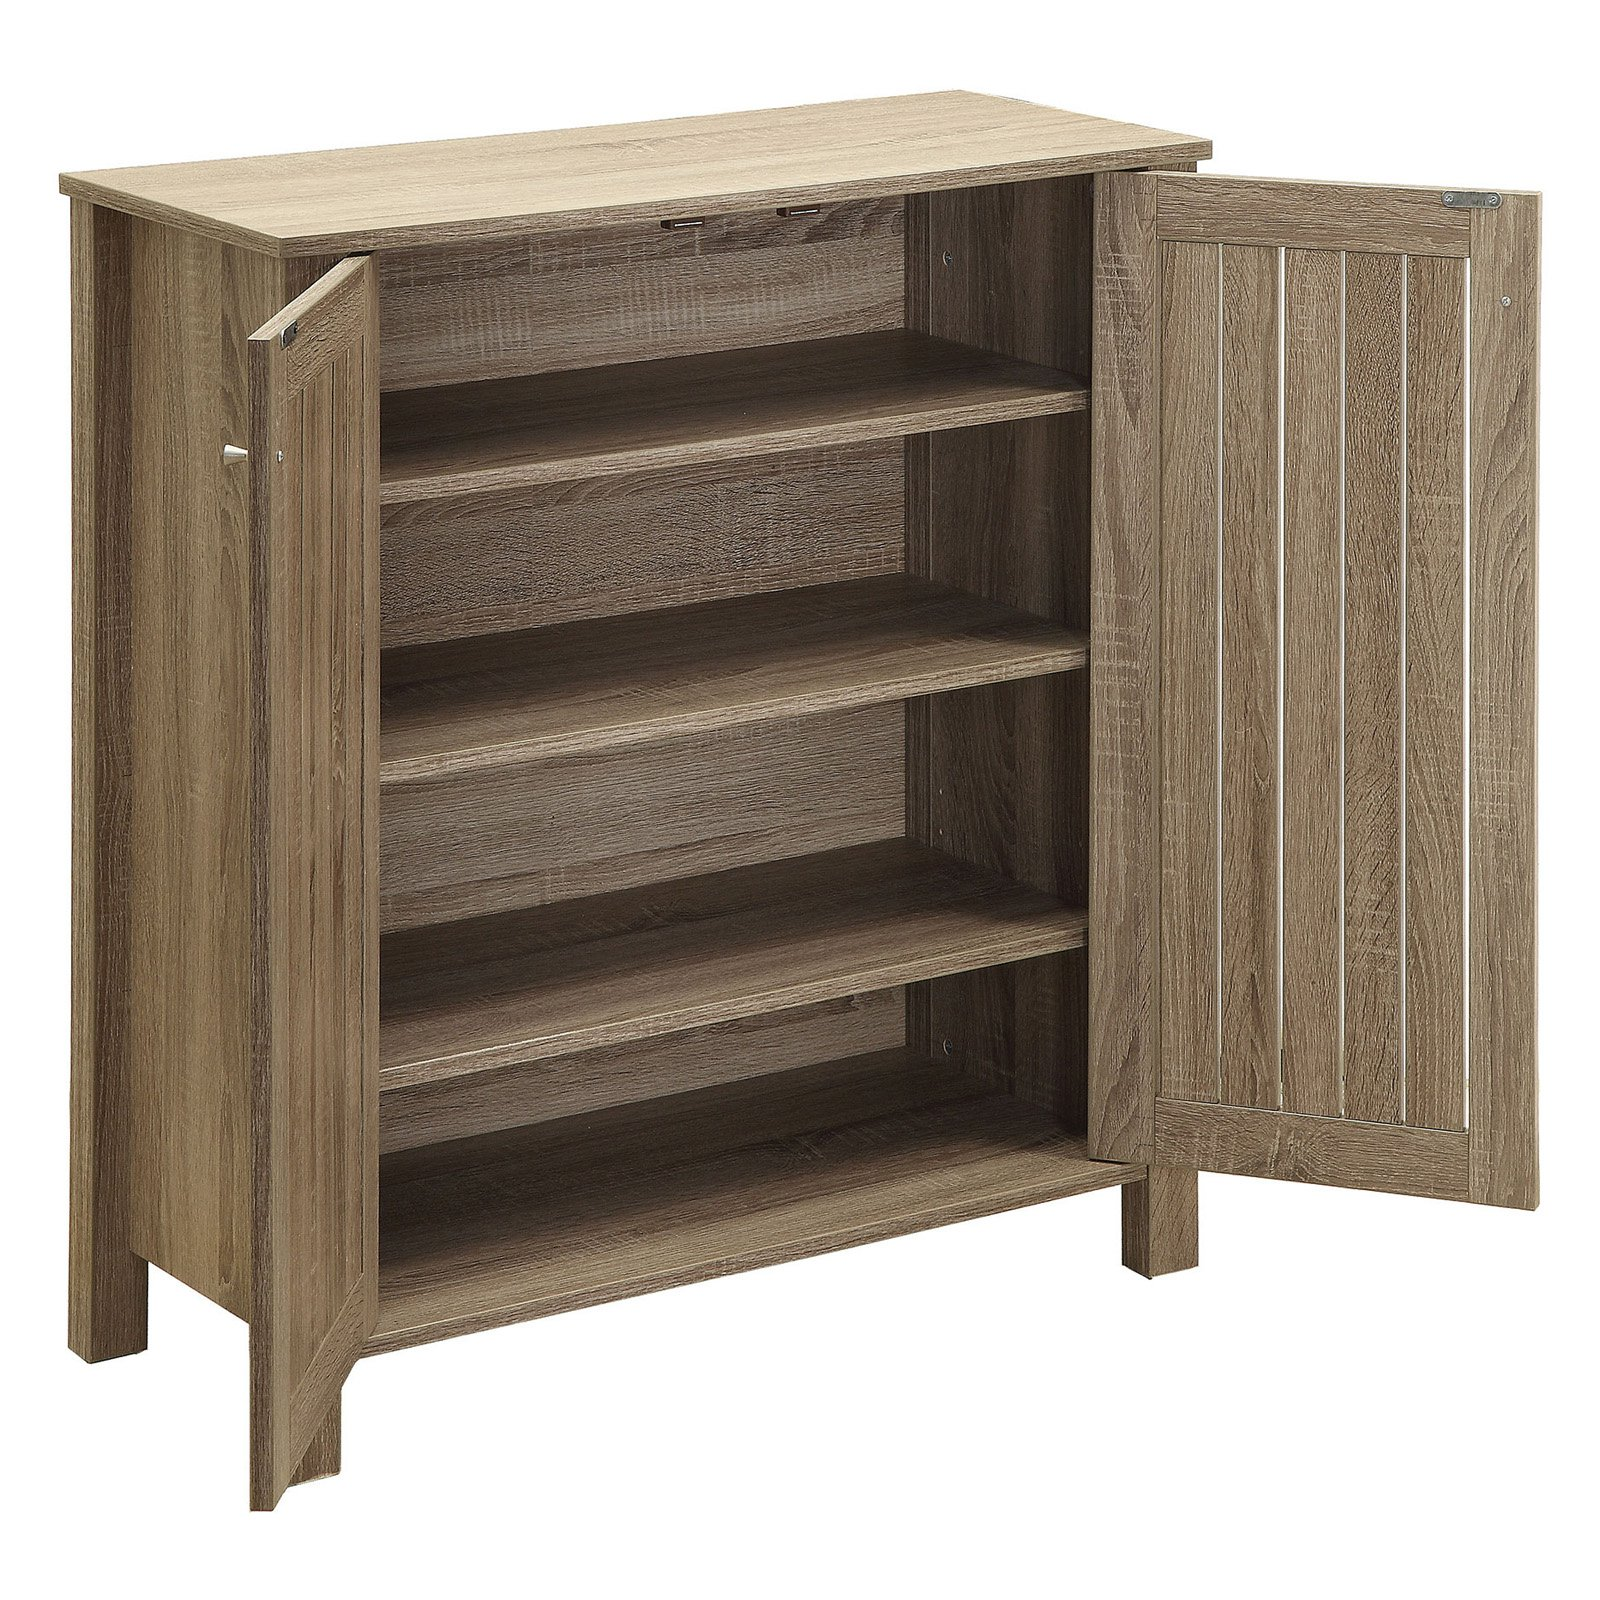 Coaster Company 2 Door Shoe Cabinet, Dark Taupe